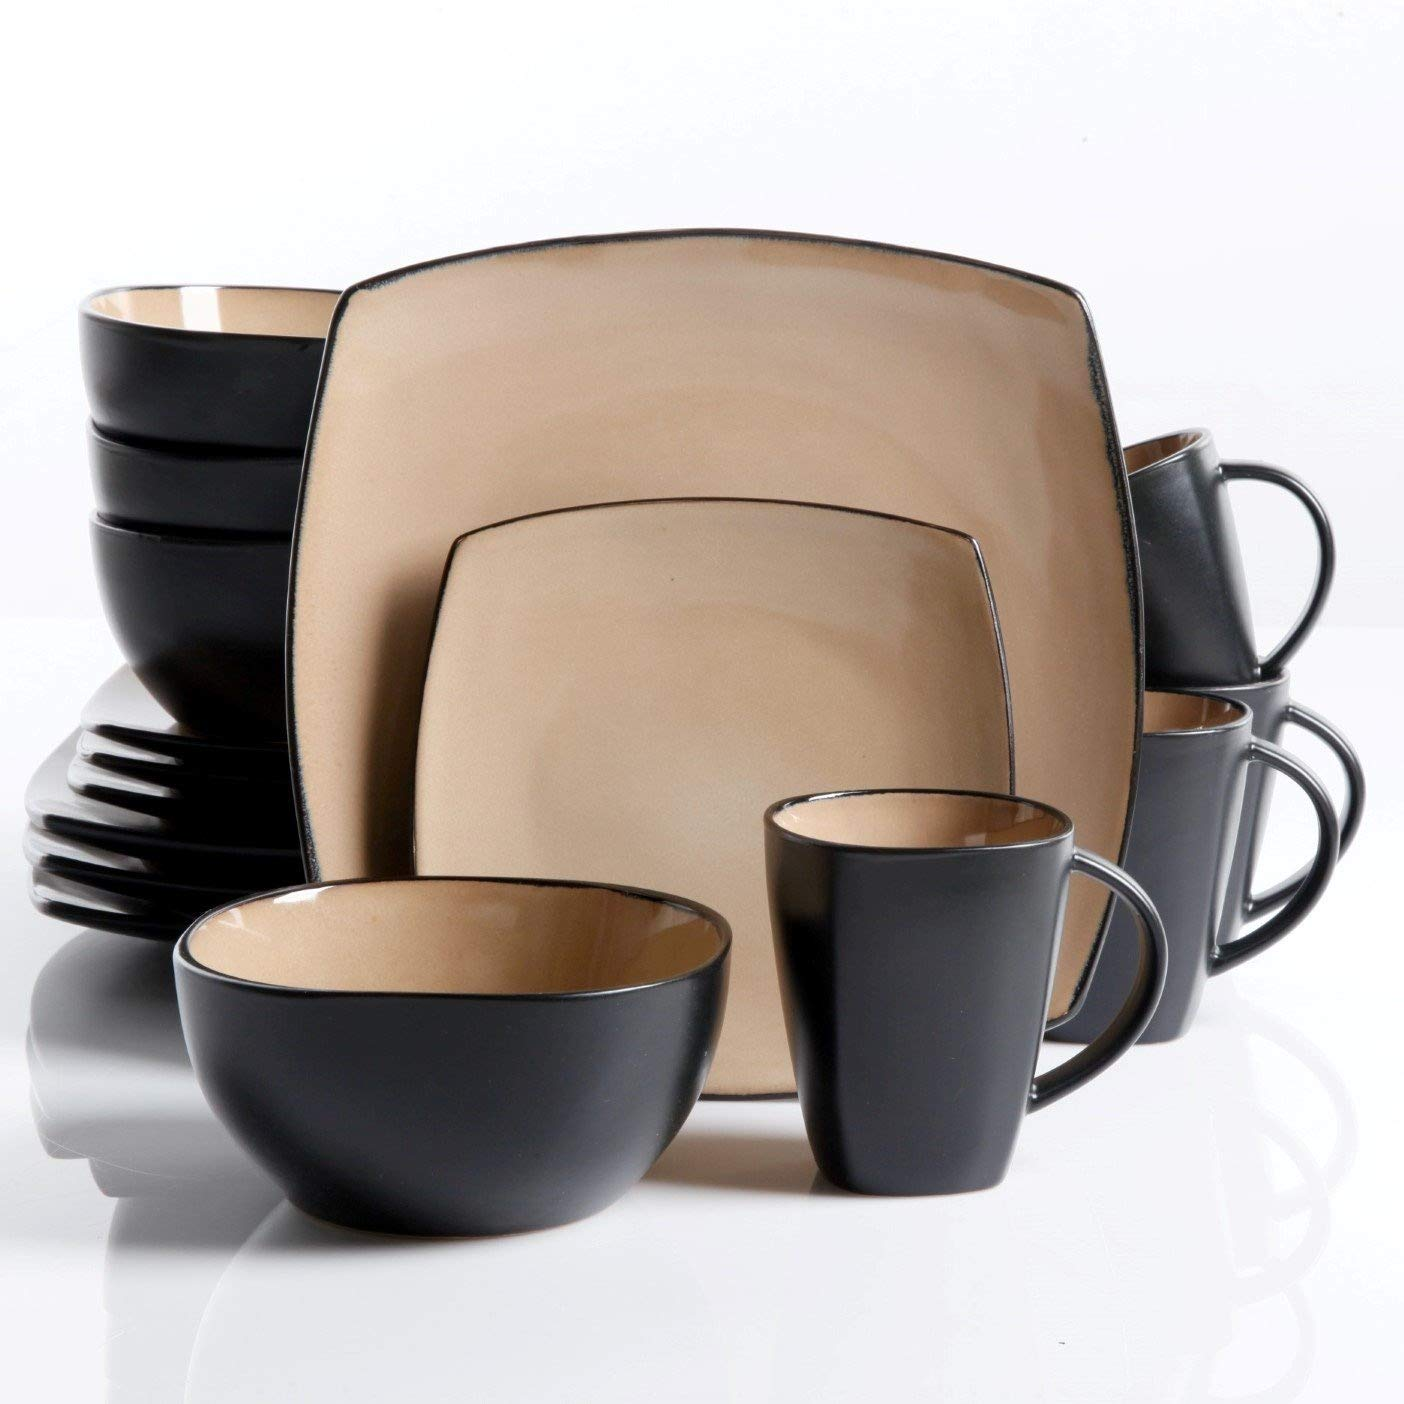 Gibson Elite Soho Lounge Reactive Glaze 16 Piece Dinnerware Set in Taupe; Includes 4 Dinner Plates; 4 Dessert Plates, 4 Bowls and 4 Mugs